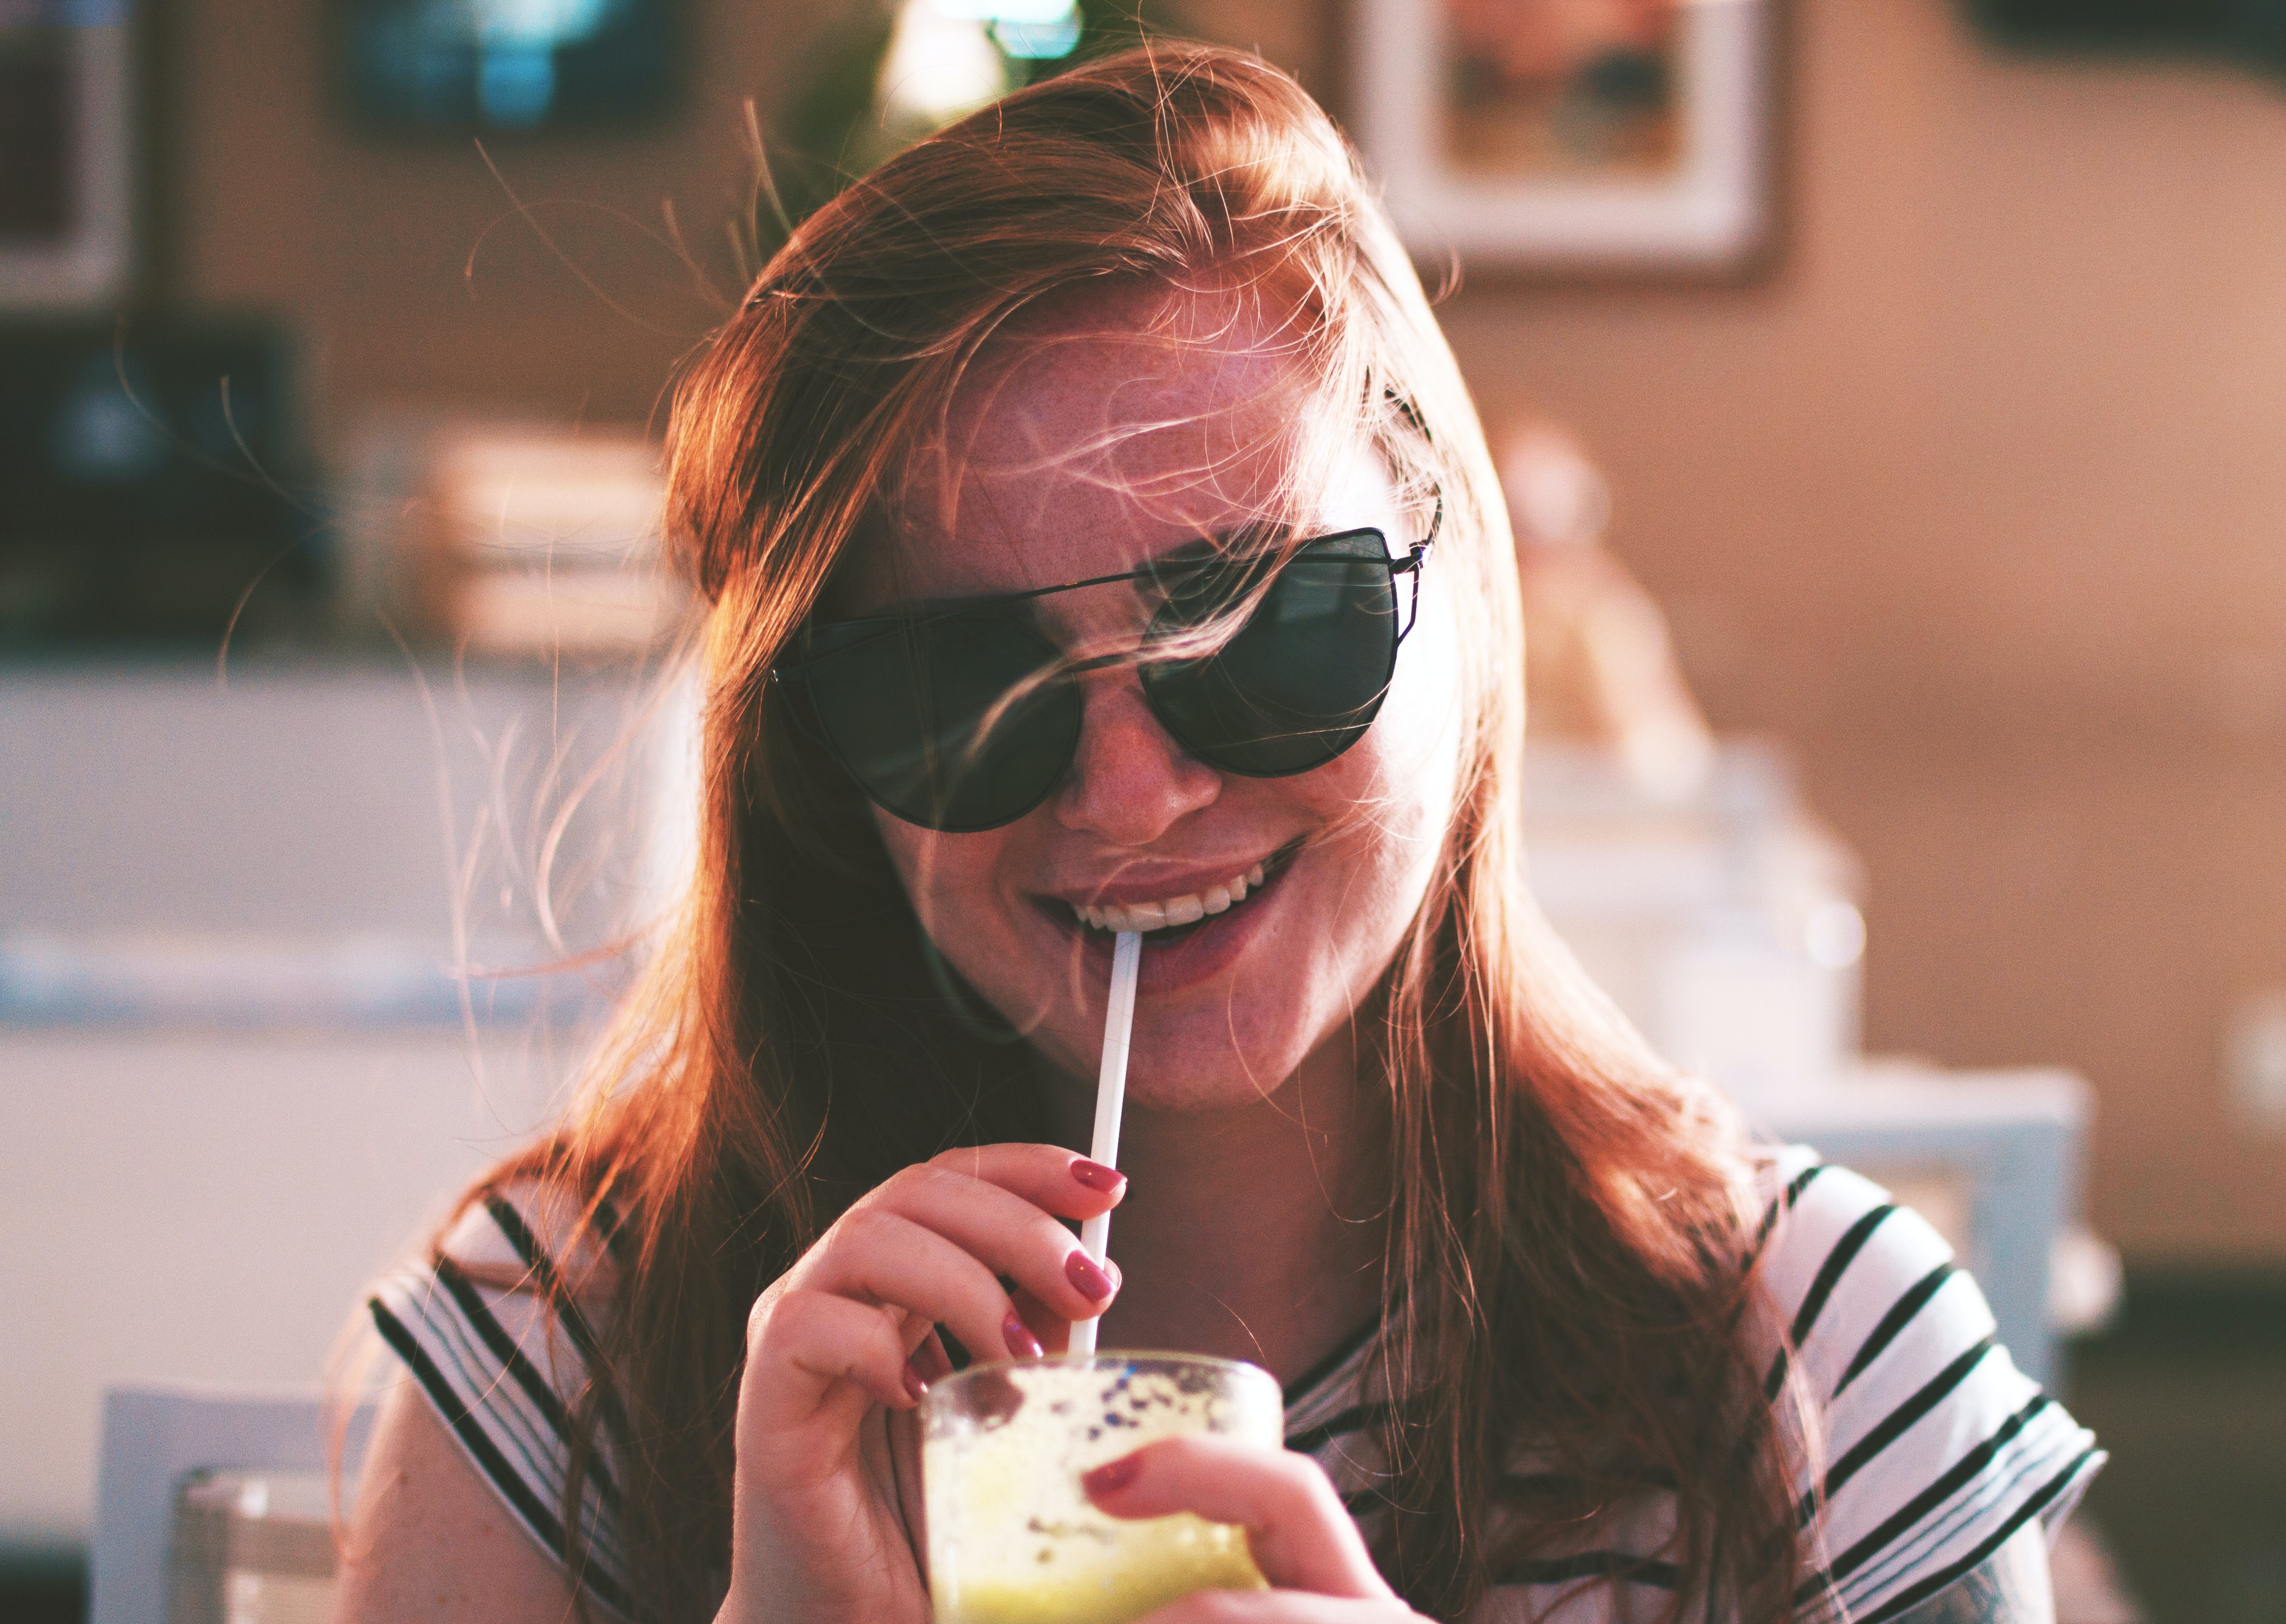 A smiling woman with sunglasses and windswept hair drinks from a straw in a Natal cafe